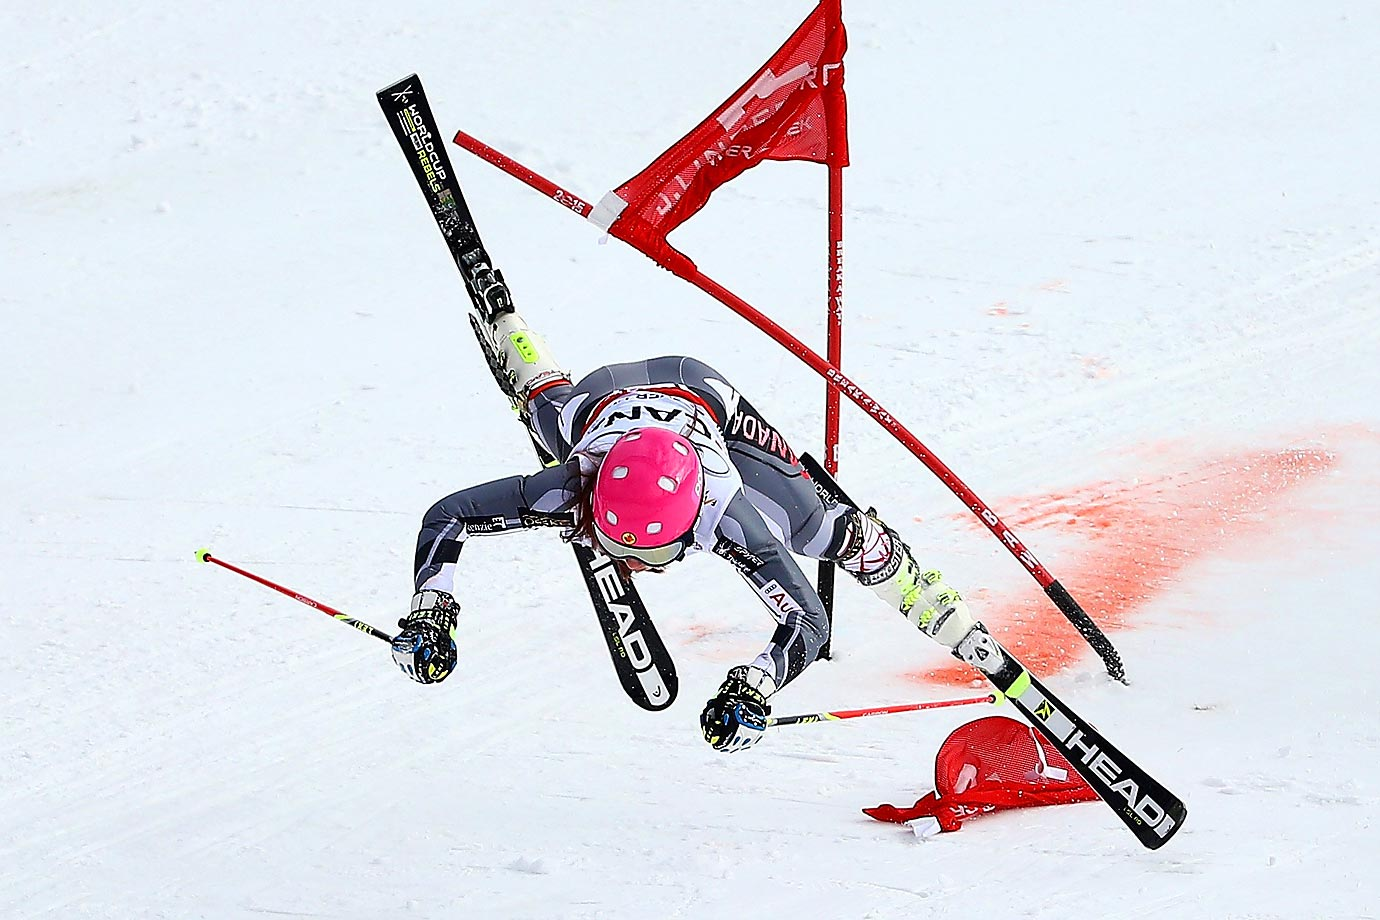 Candace Crawford of Canada crashes in her heat against Viktoria Rebensburg of Germany during the Nations Team Event at Golden Peak Stadium on Day 9 of the 2015 FIS Alpine World Ski Championships.